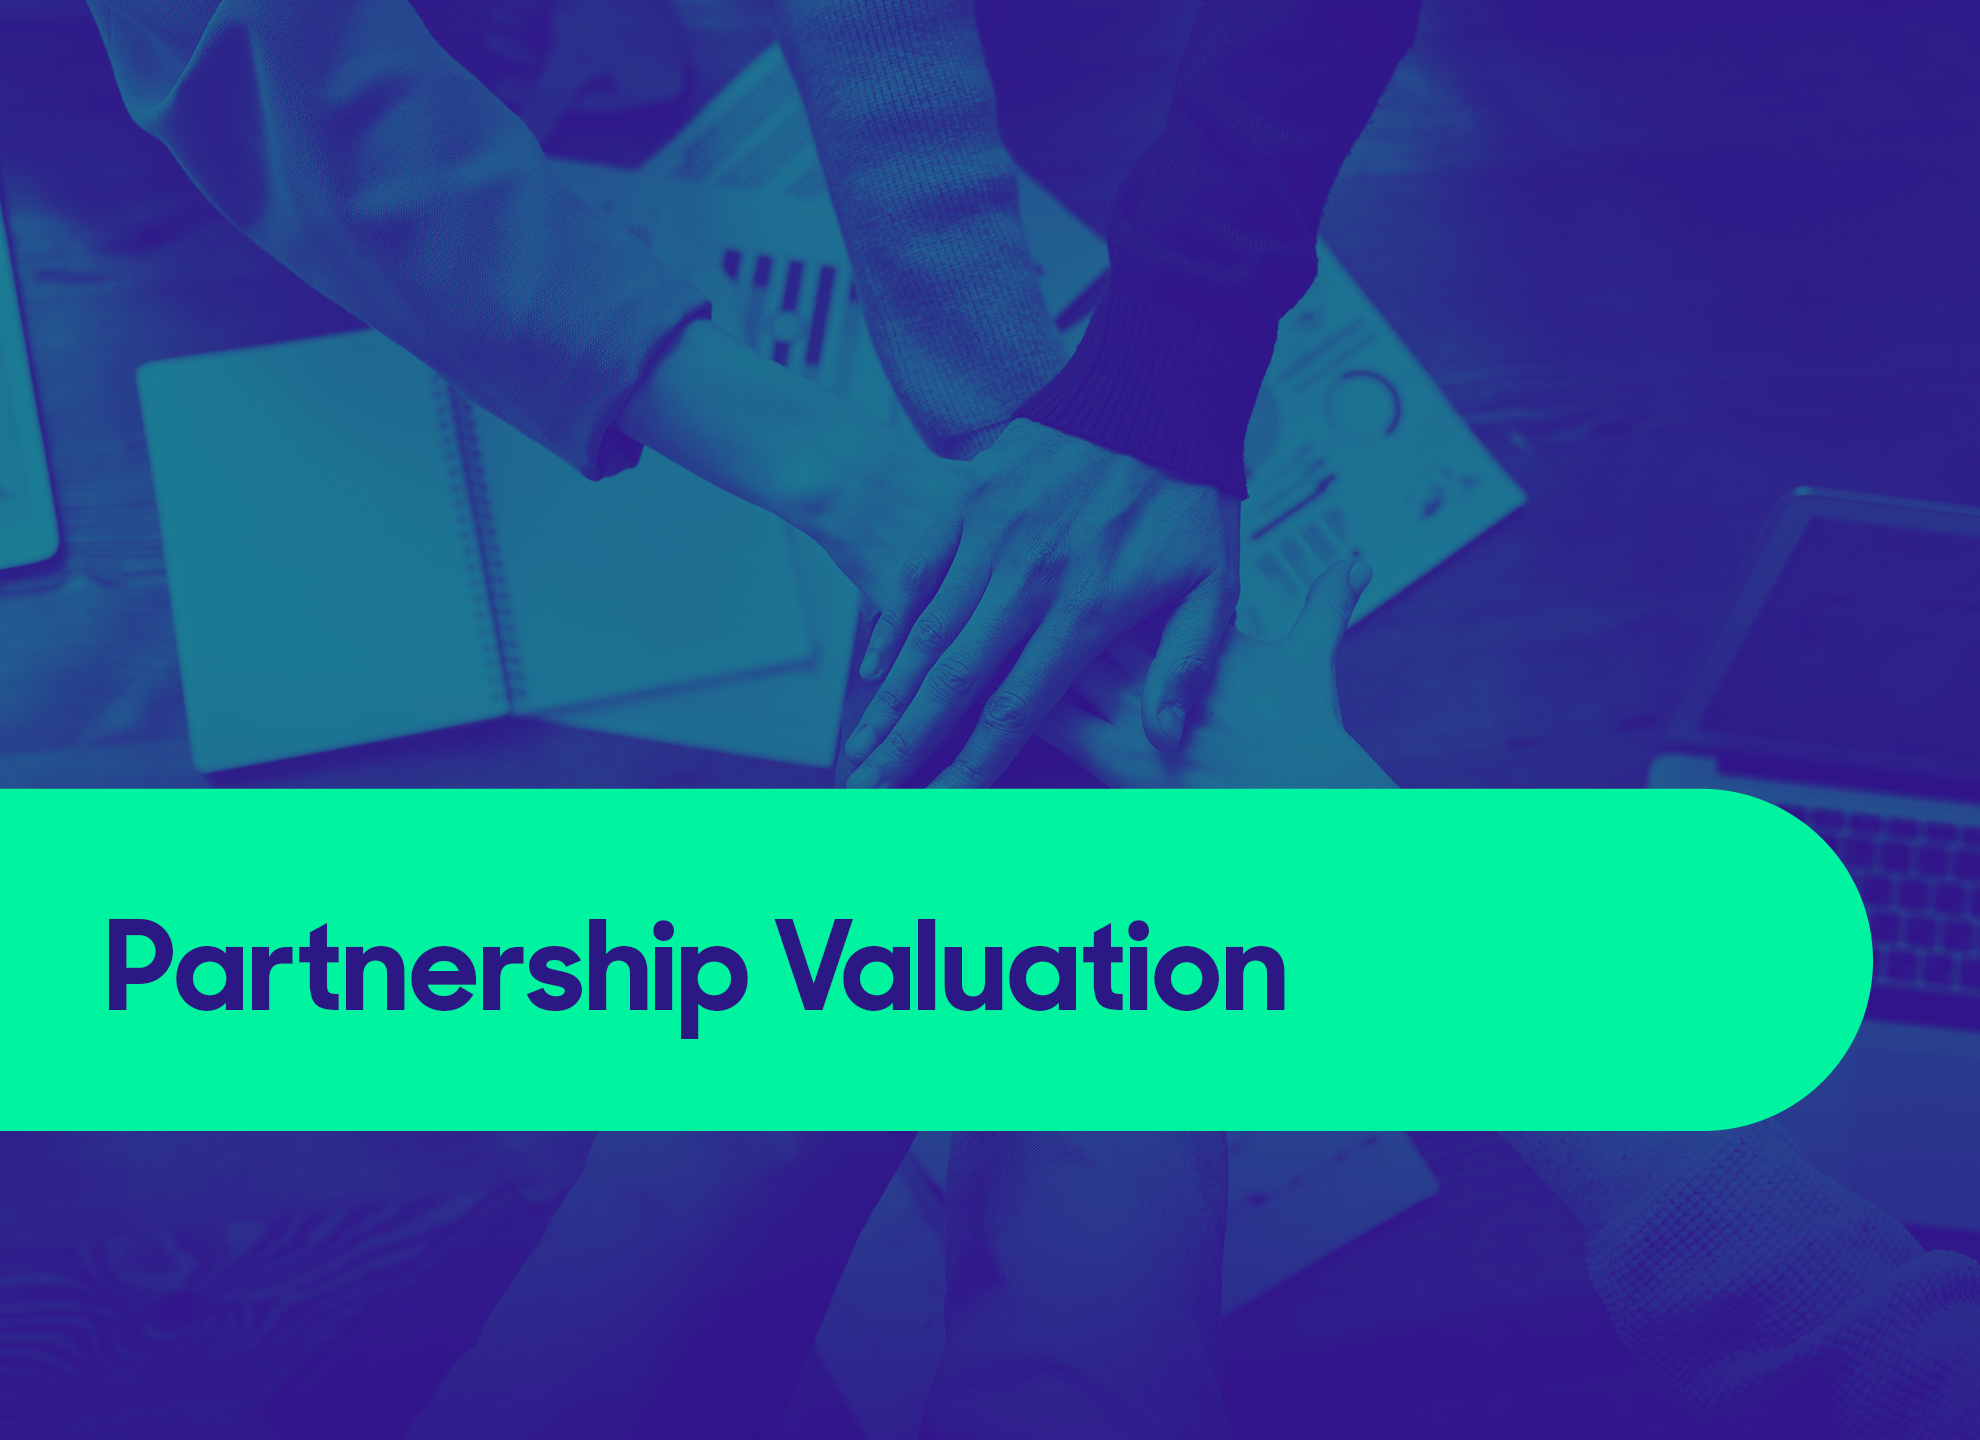 Partnership Valuation Thumbnail